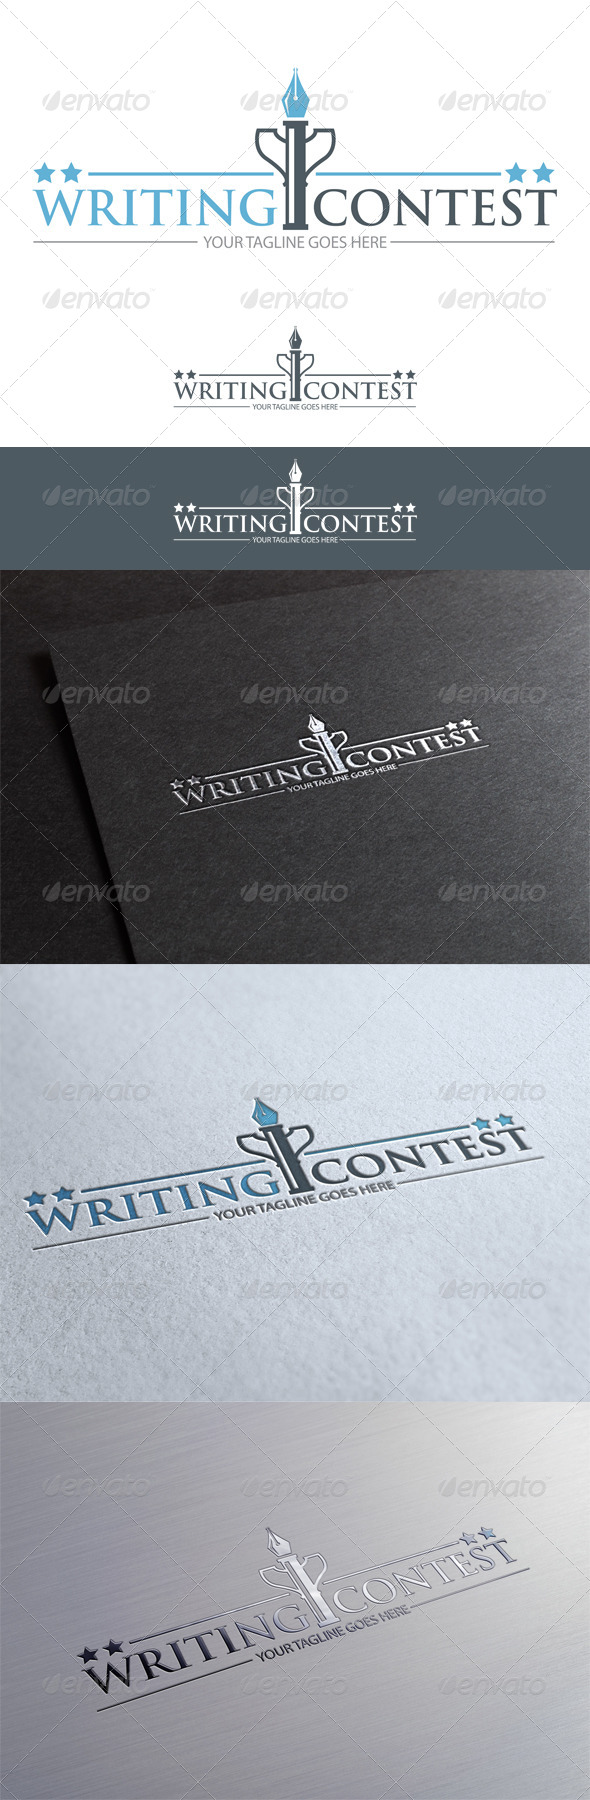 Writing Contest - Abstract Logo Templates